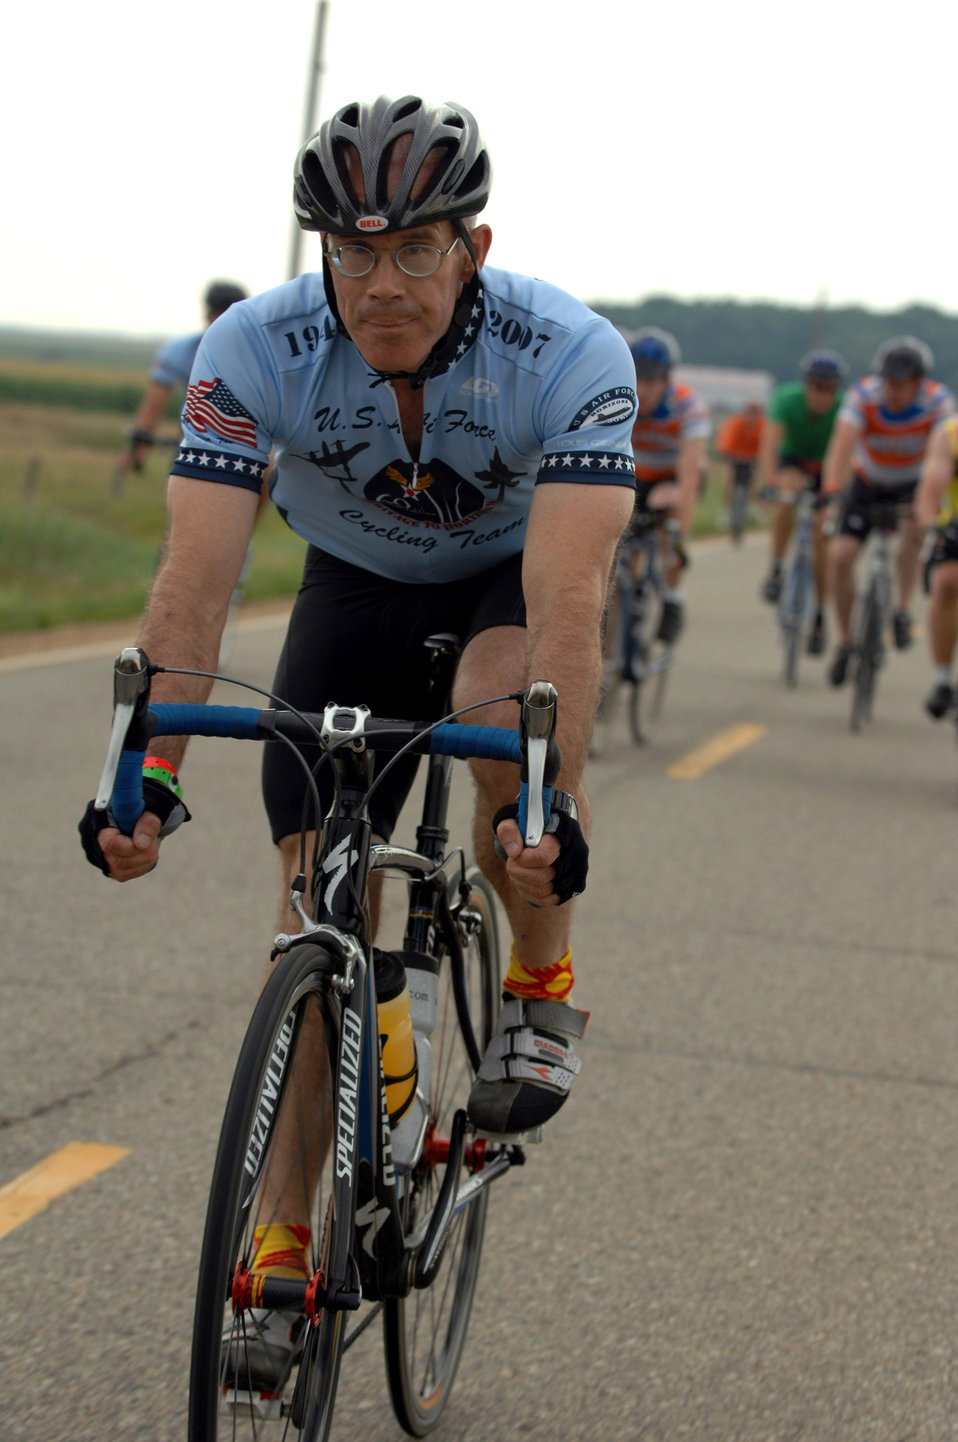 Airmen cycle across Iowa